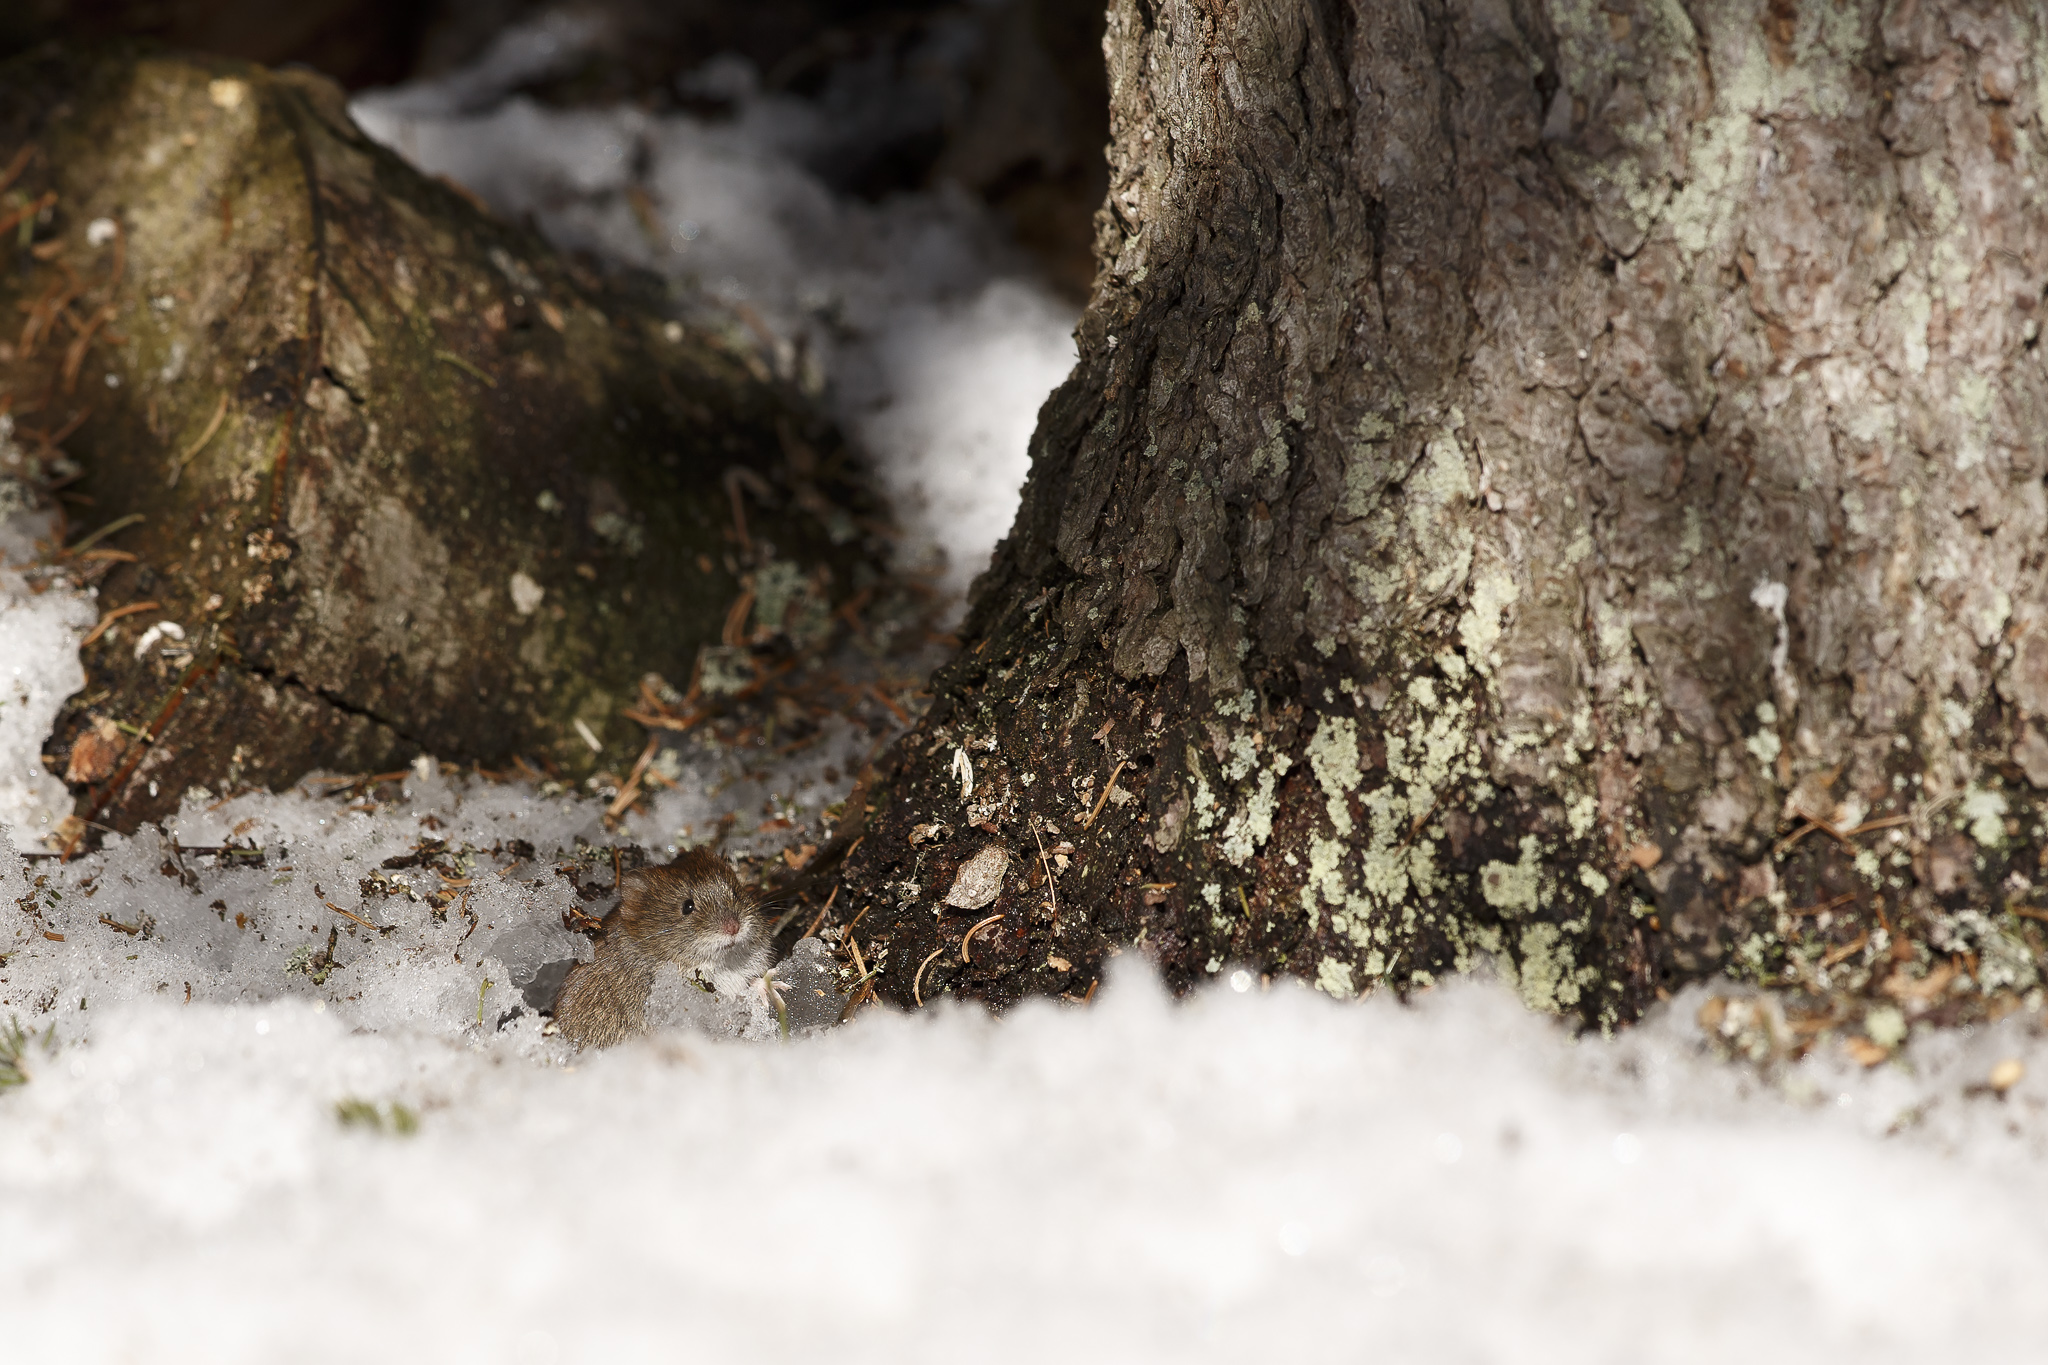 Canon 1dx, 300 f/2.8 is II @f/4. ISO 100. Forest vole